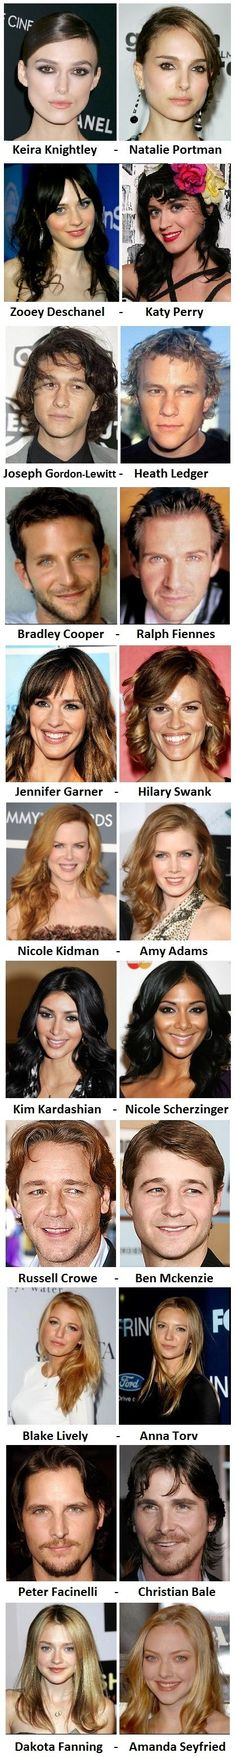 These are probably the best celebrity look-alikes I've ever seen...